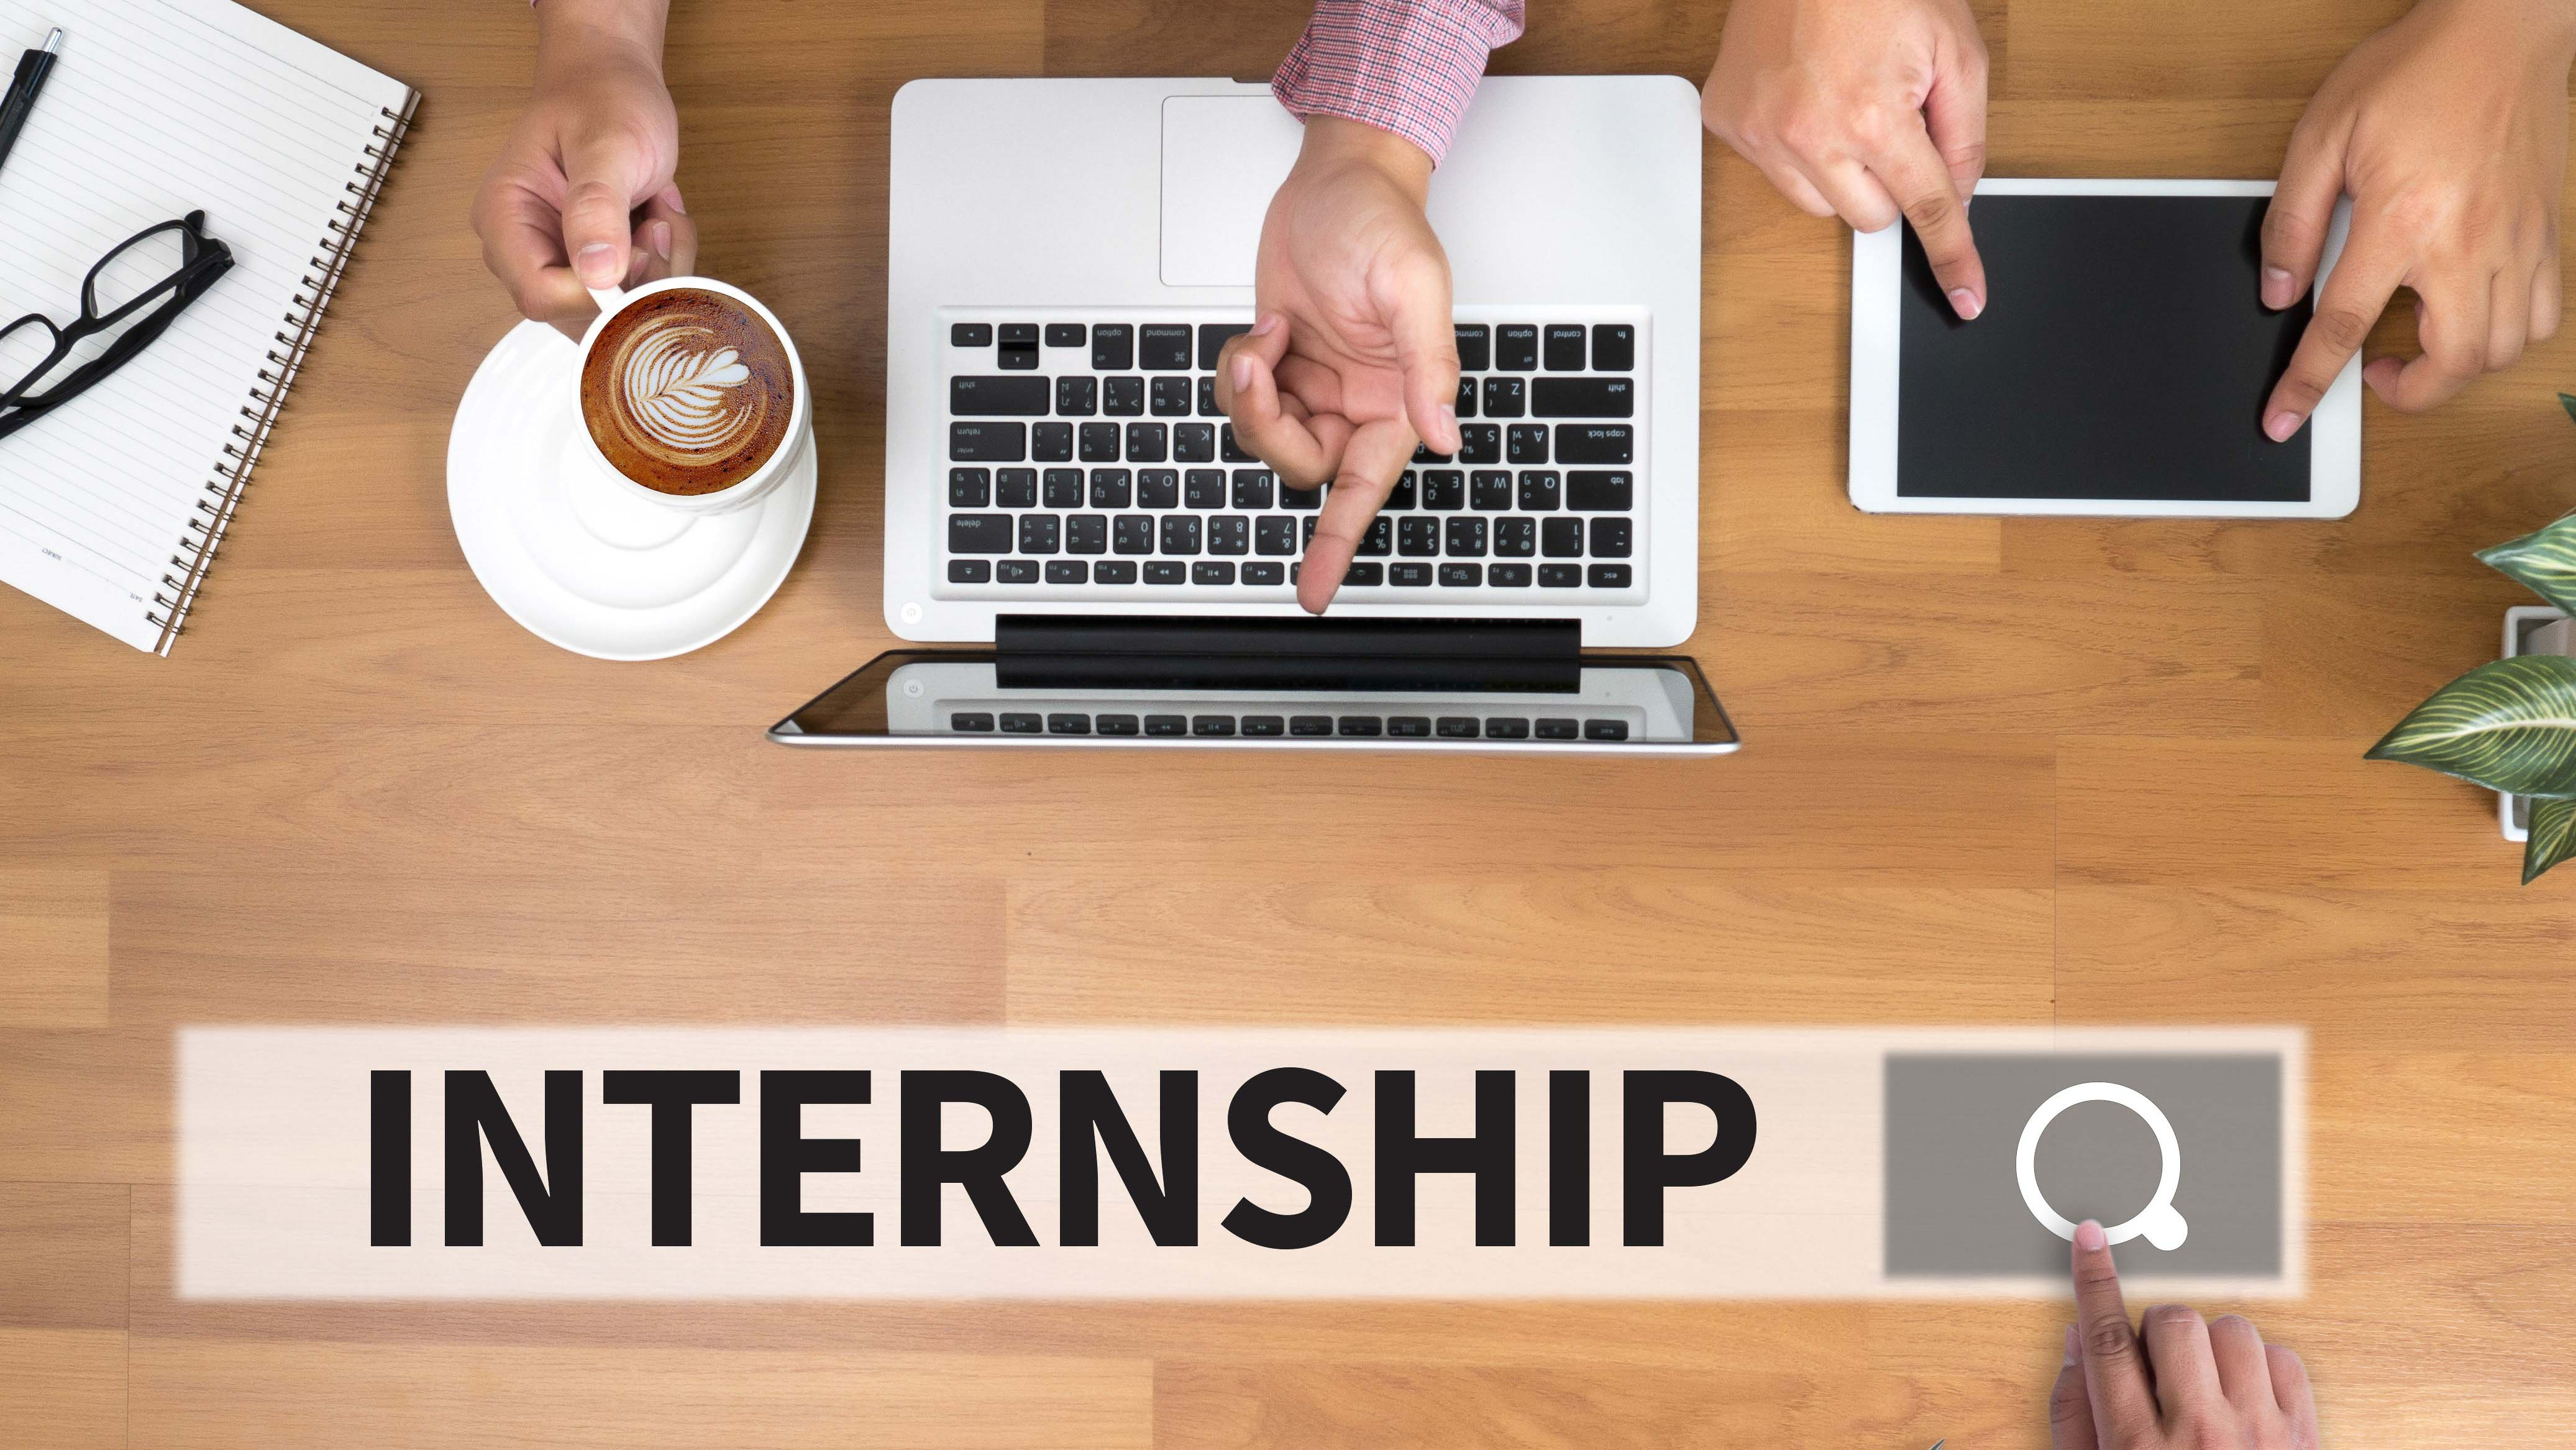 The Perfect Summer Plan: Try an Internship